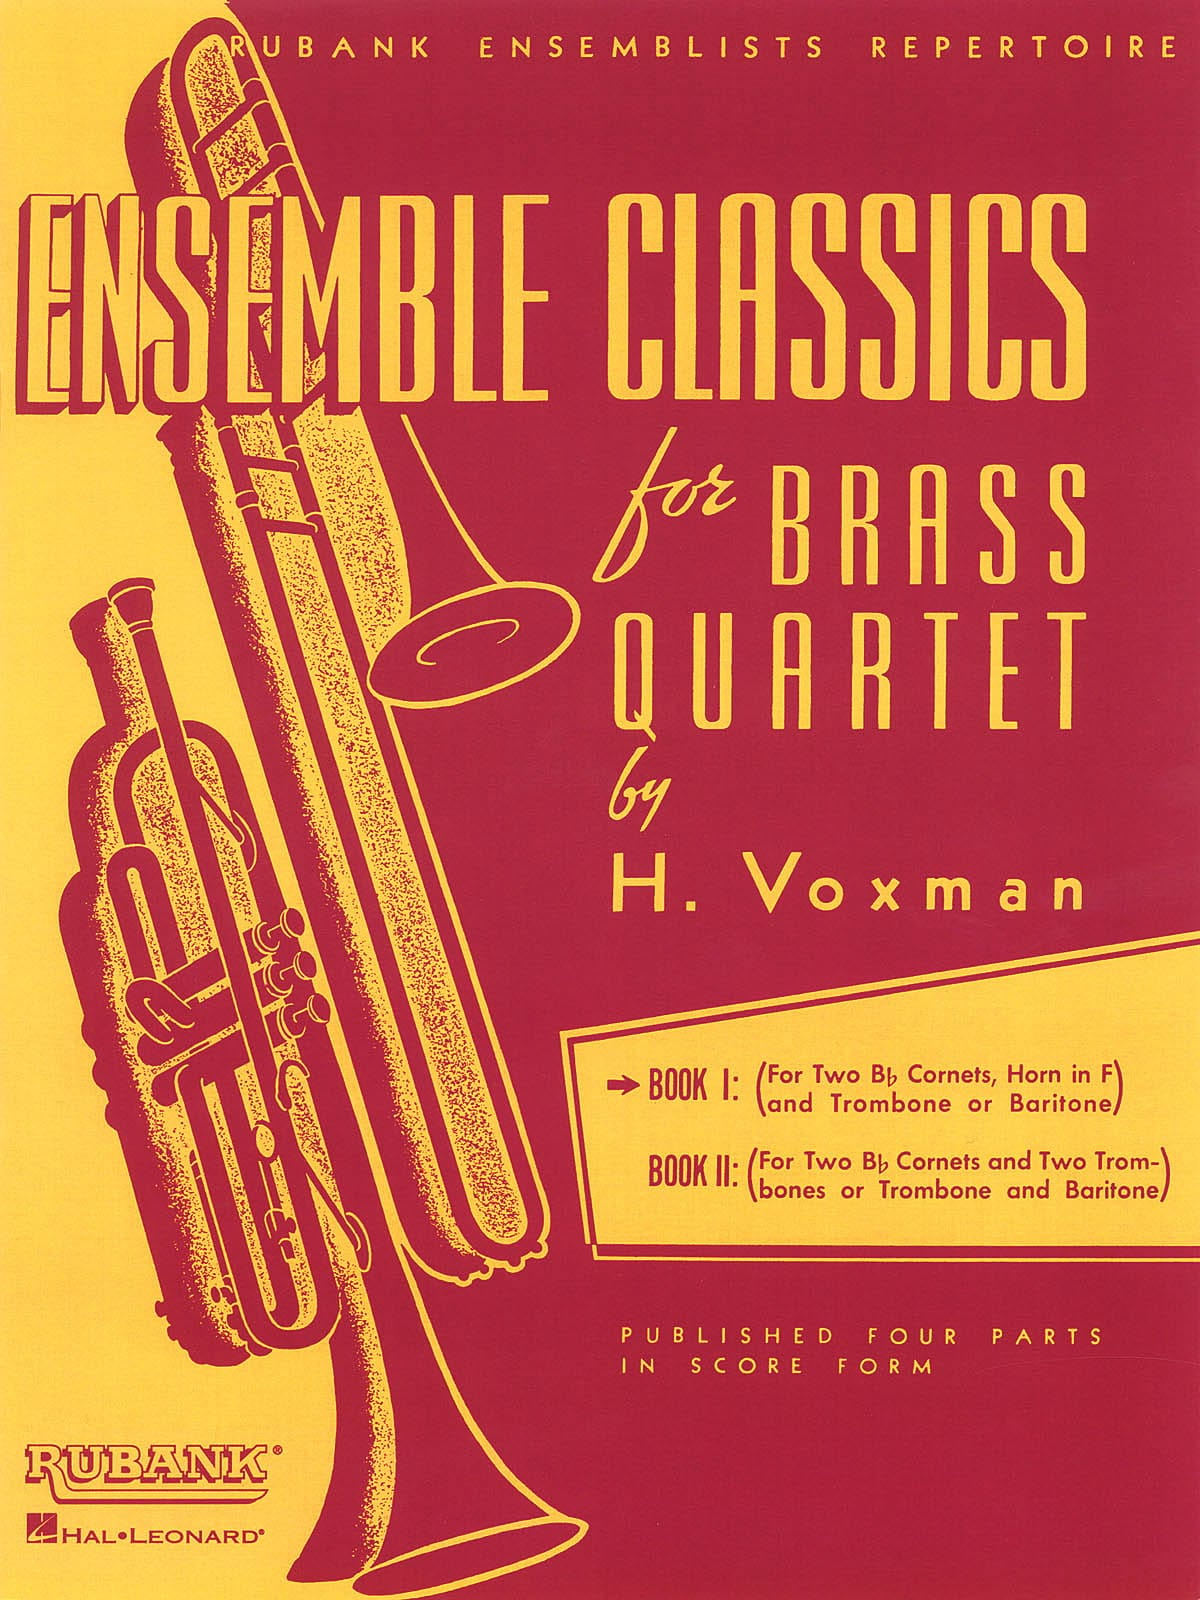 Ensemble classics for brass quartet book 1 - Score - laflutedepan.com